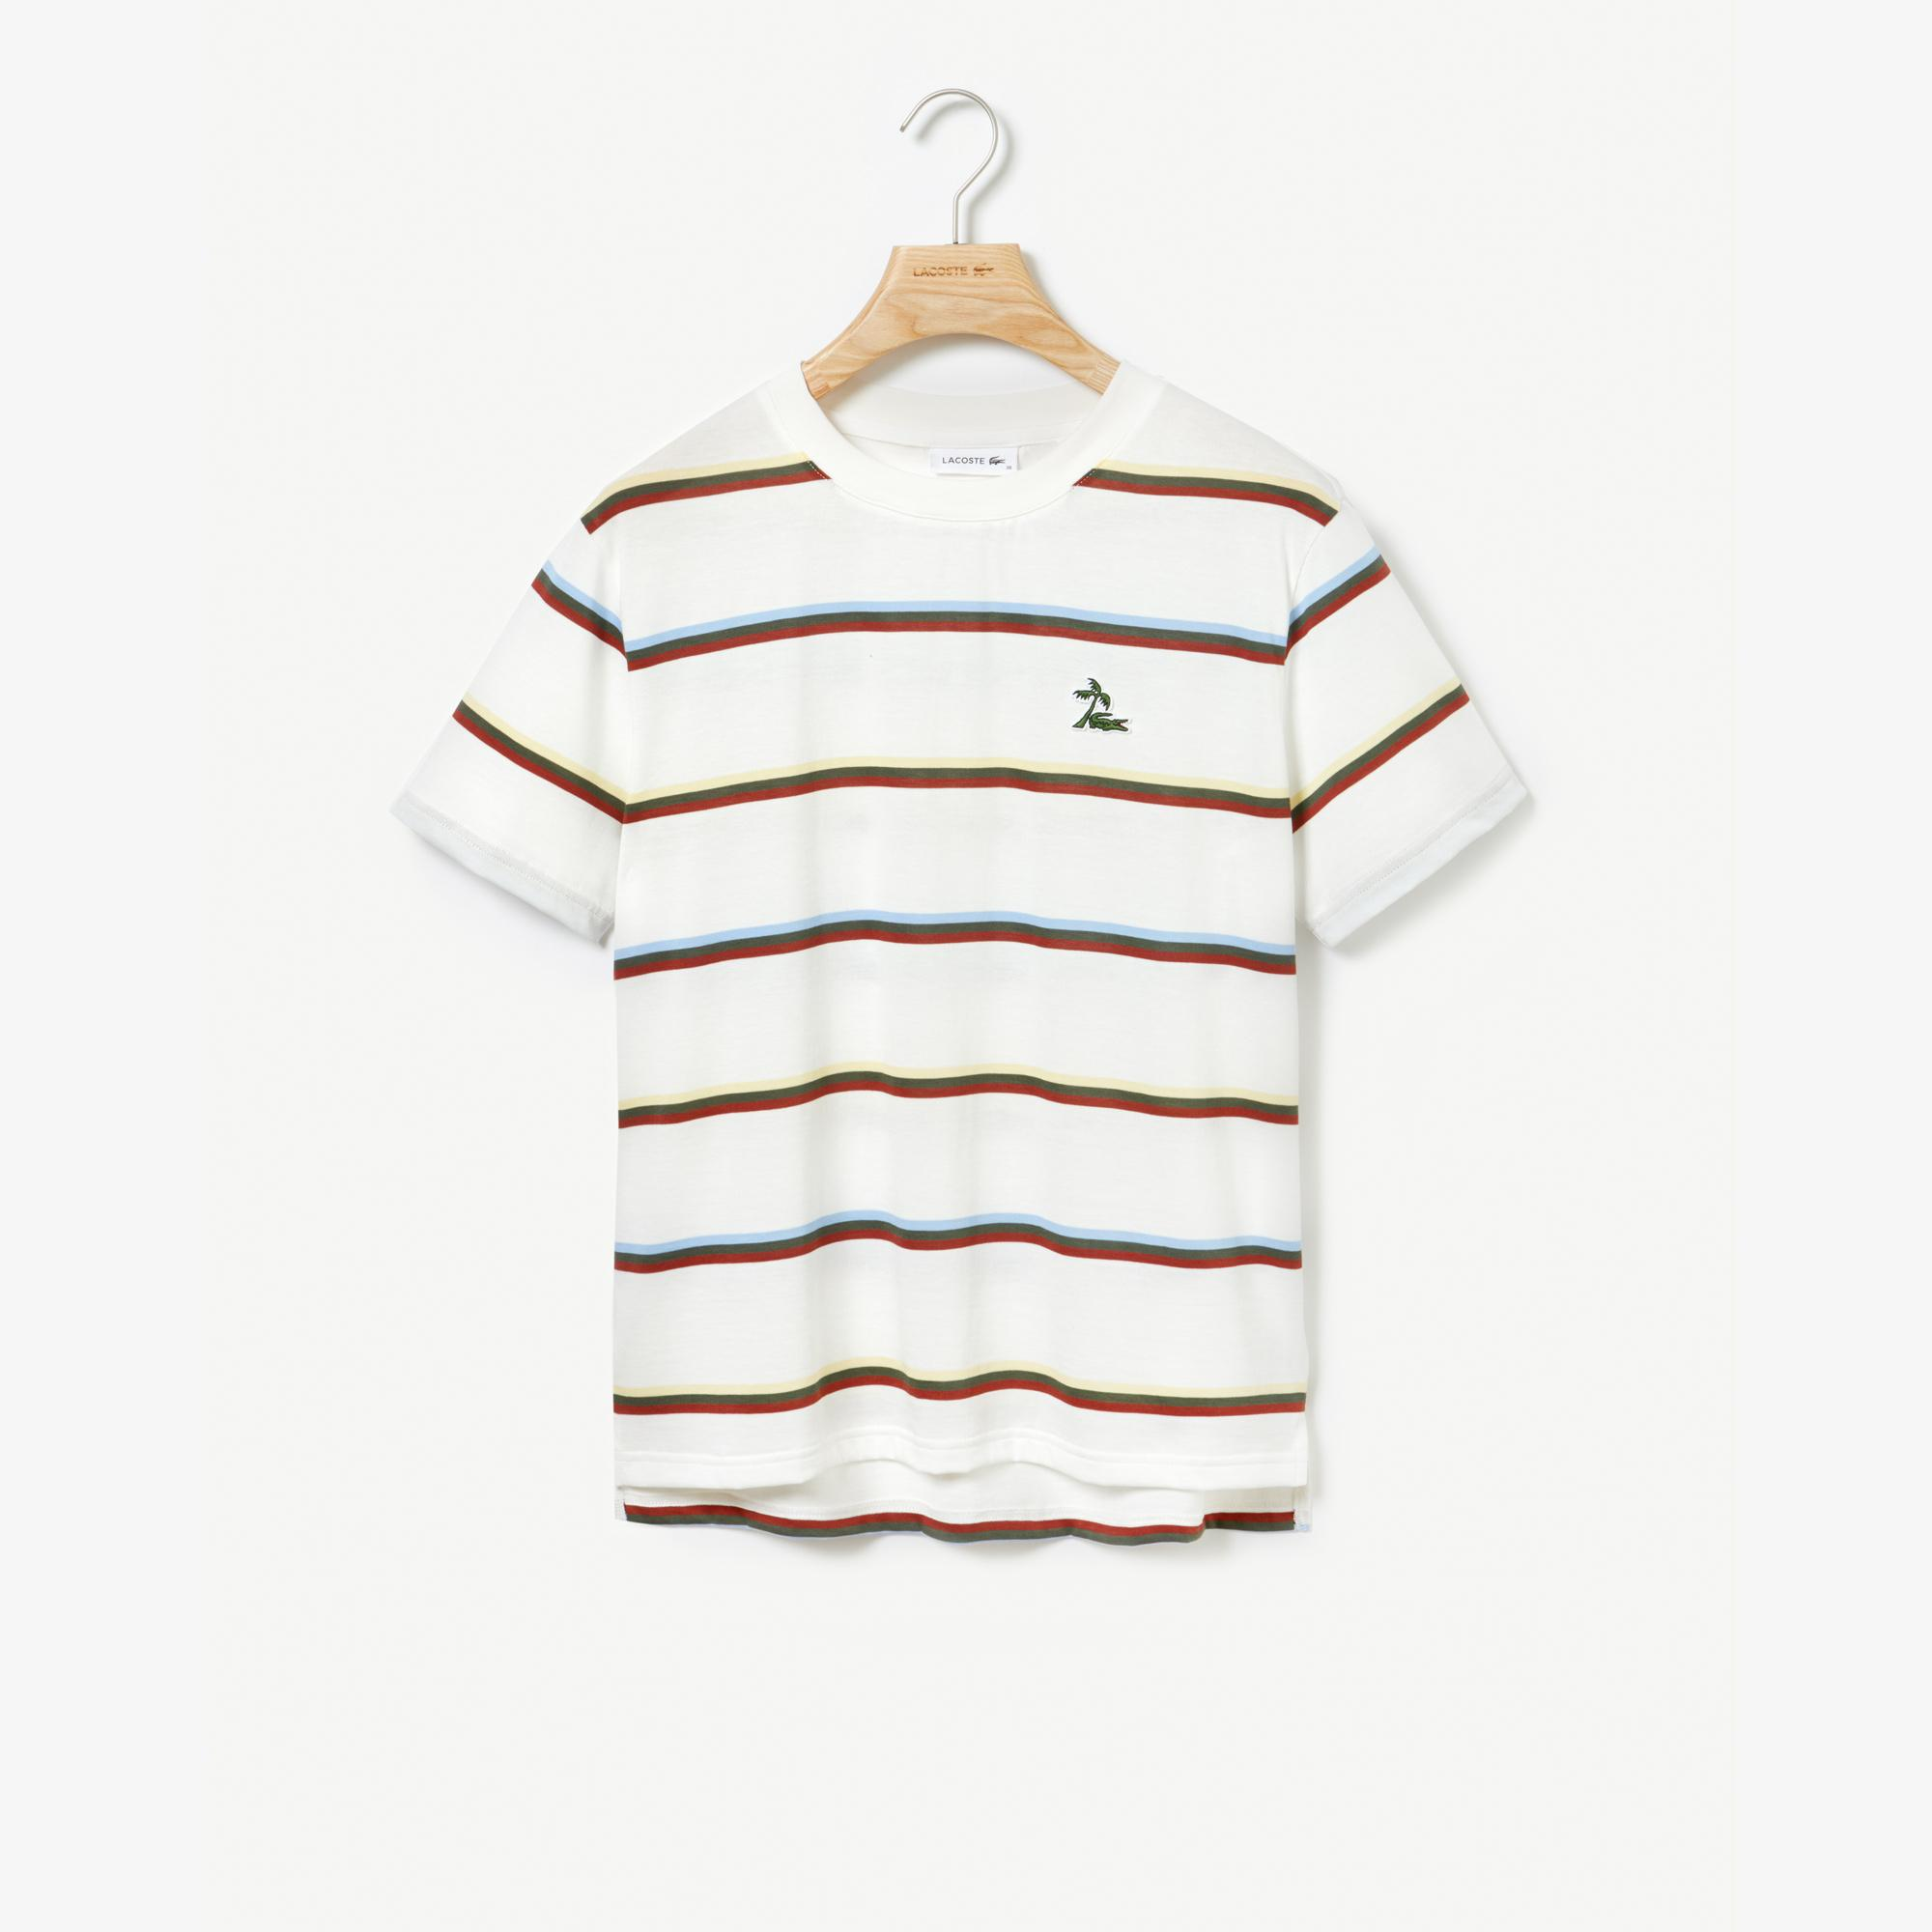 Lacoste Women's Wide Neck Striped Jersey T-Shirt